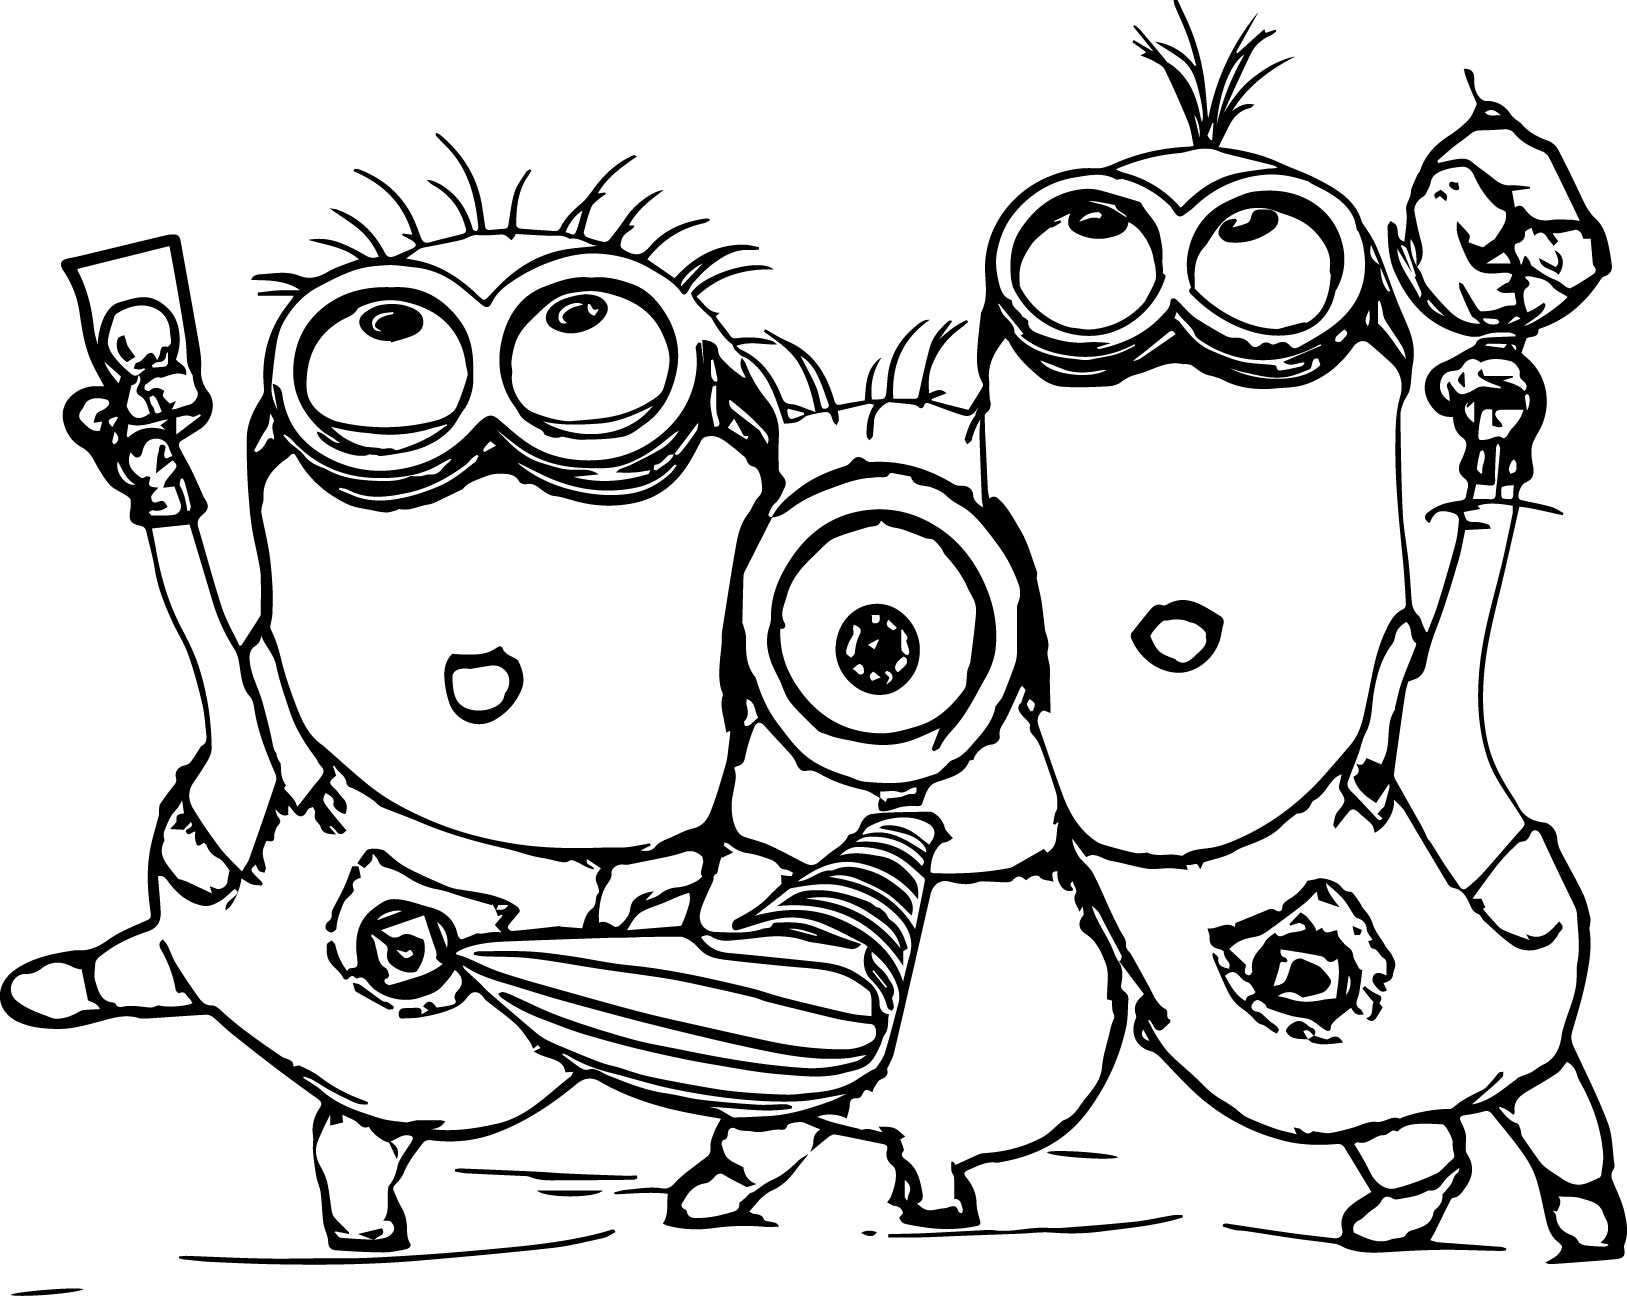 minions coloring minion coloring pages best coloring pages for kids coloring minions 1 2